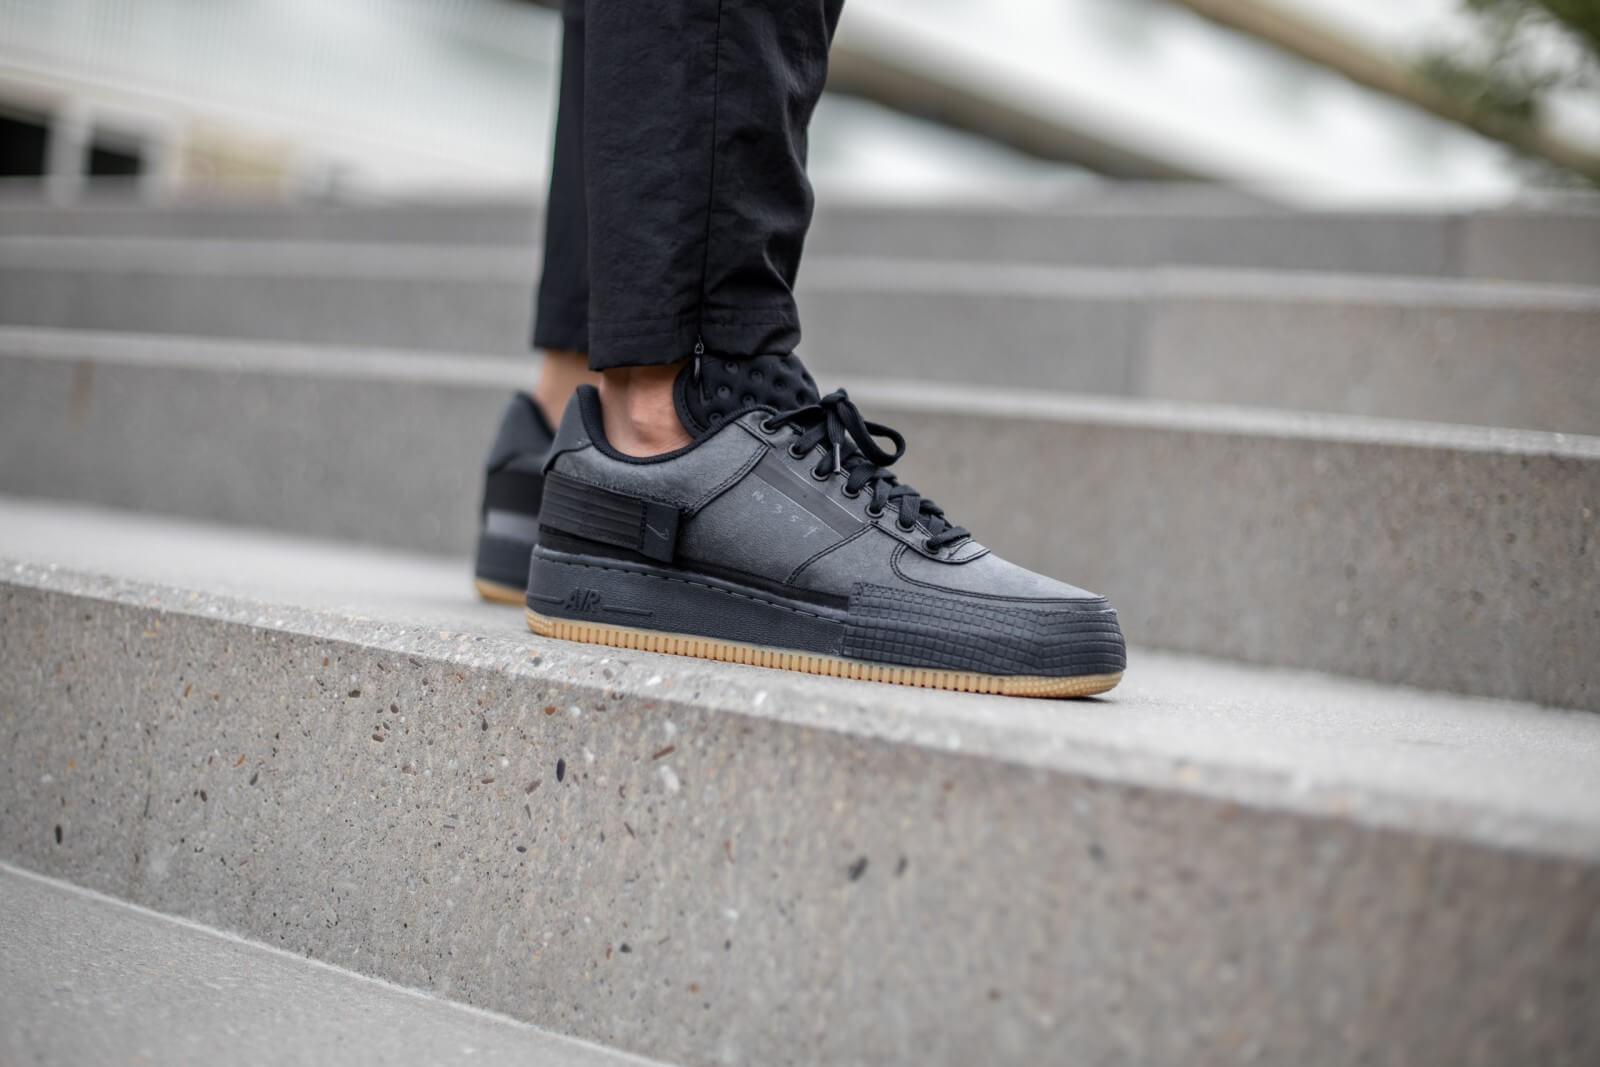 violencia dividir Peaje  Nike Air Force 1 Type Black/Anthracite-Gum Light Brown - CJ1281-001